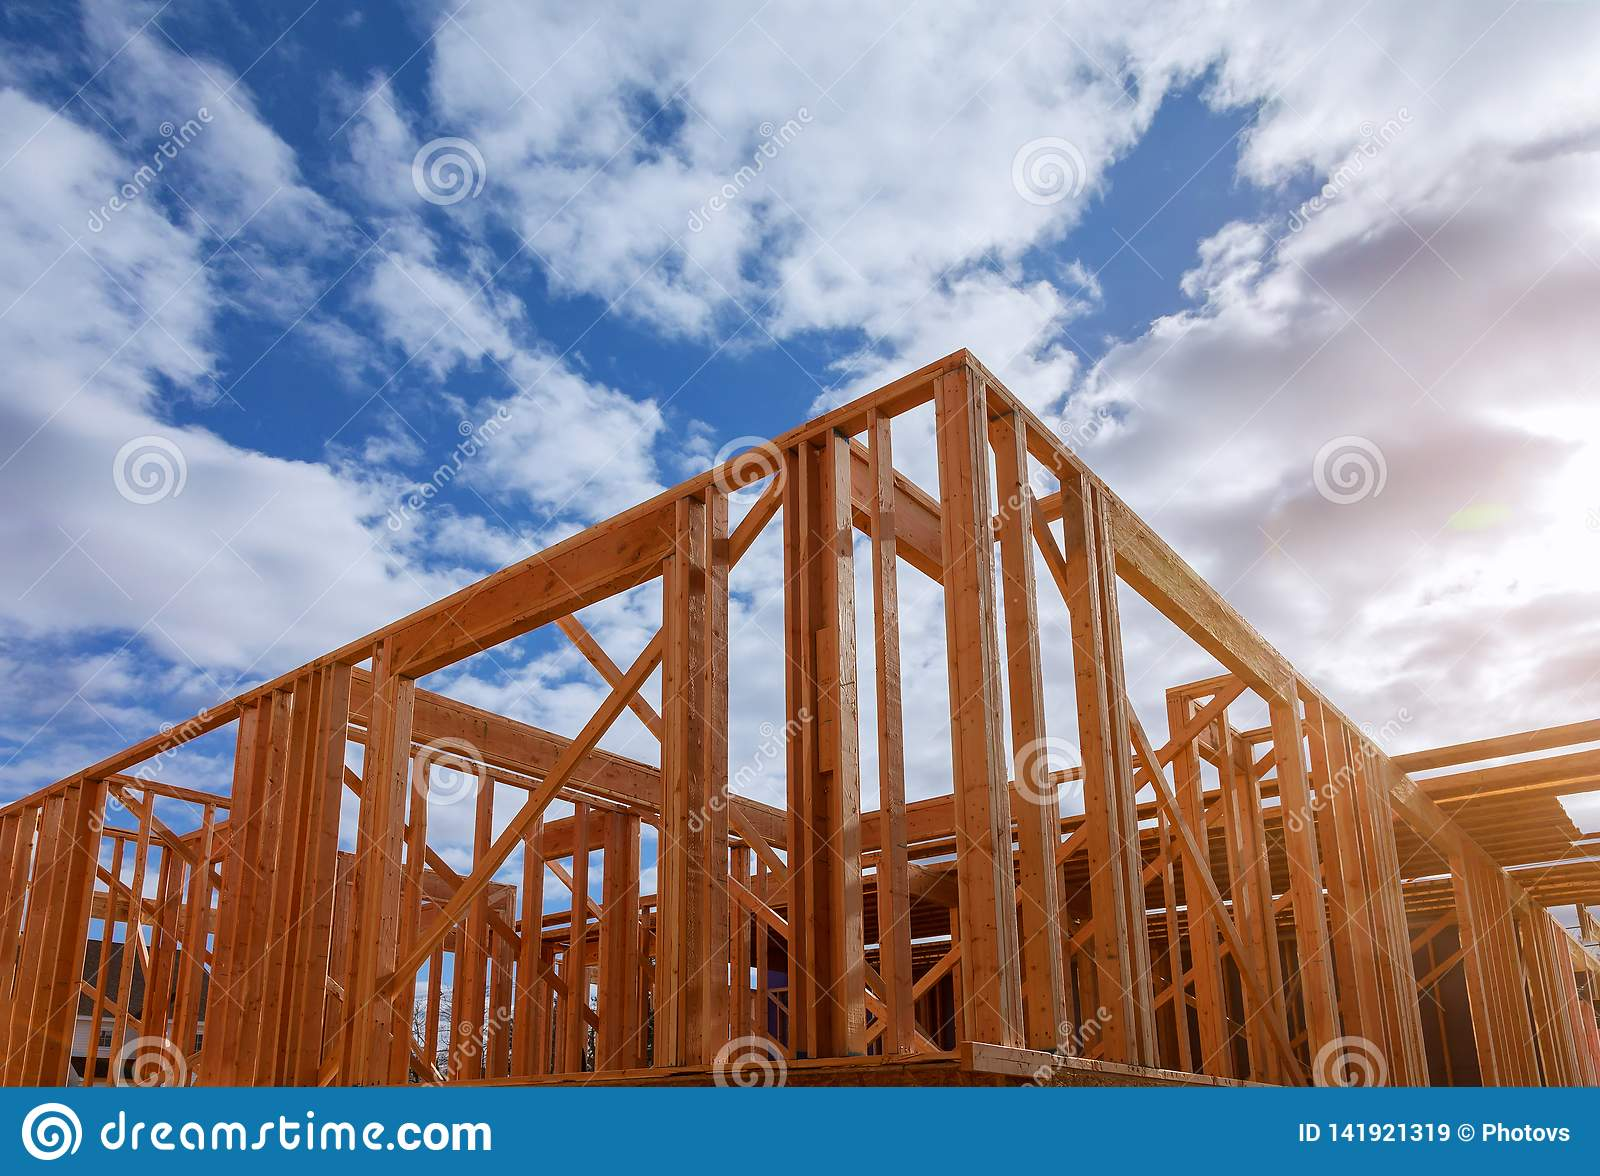 Close-up of beam built home under construction and blue sky with wooden truss, post and beam framework. Timber frame house, real